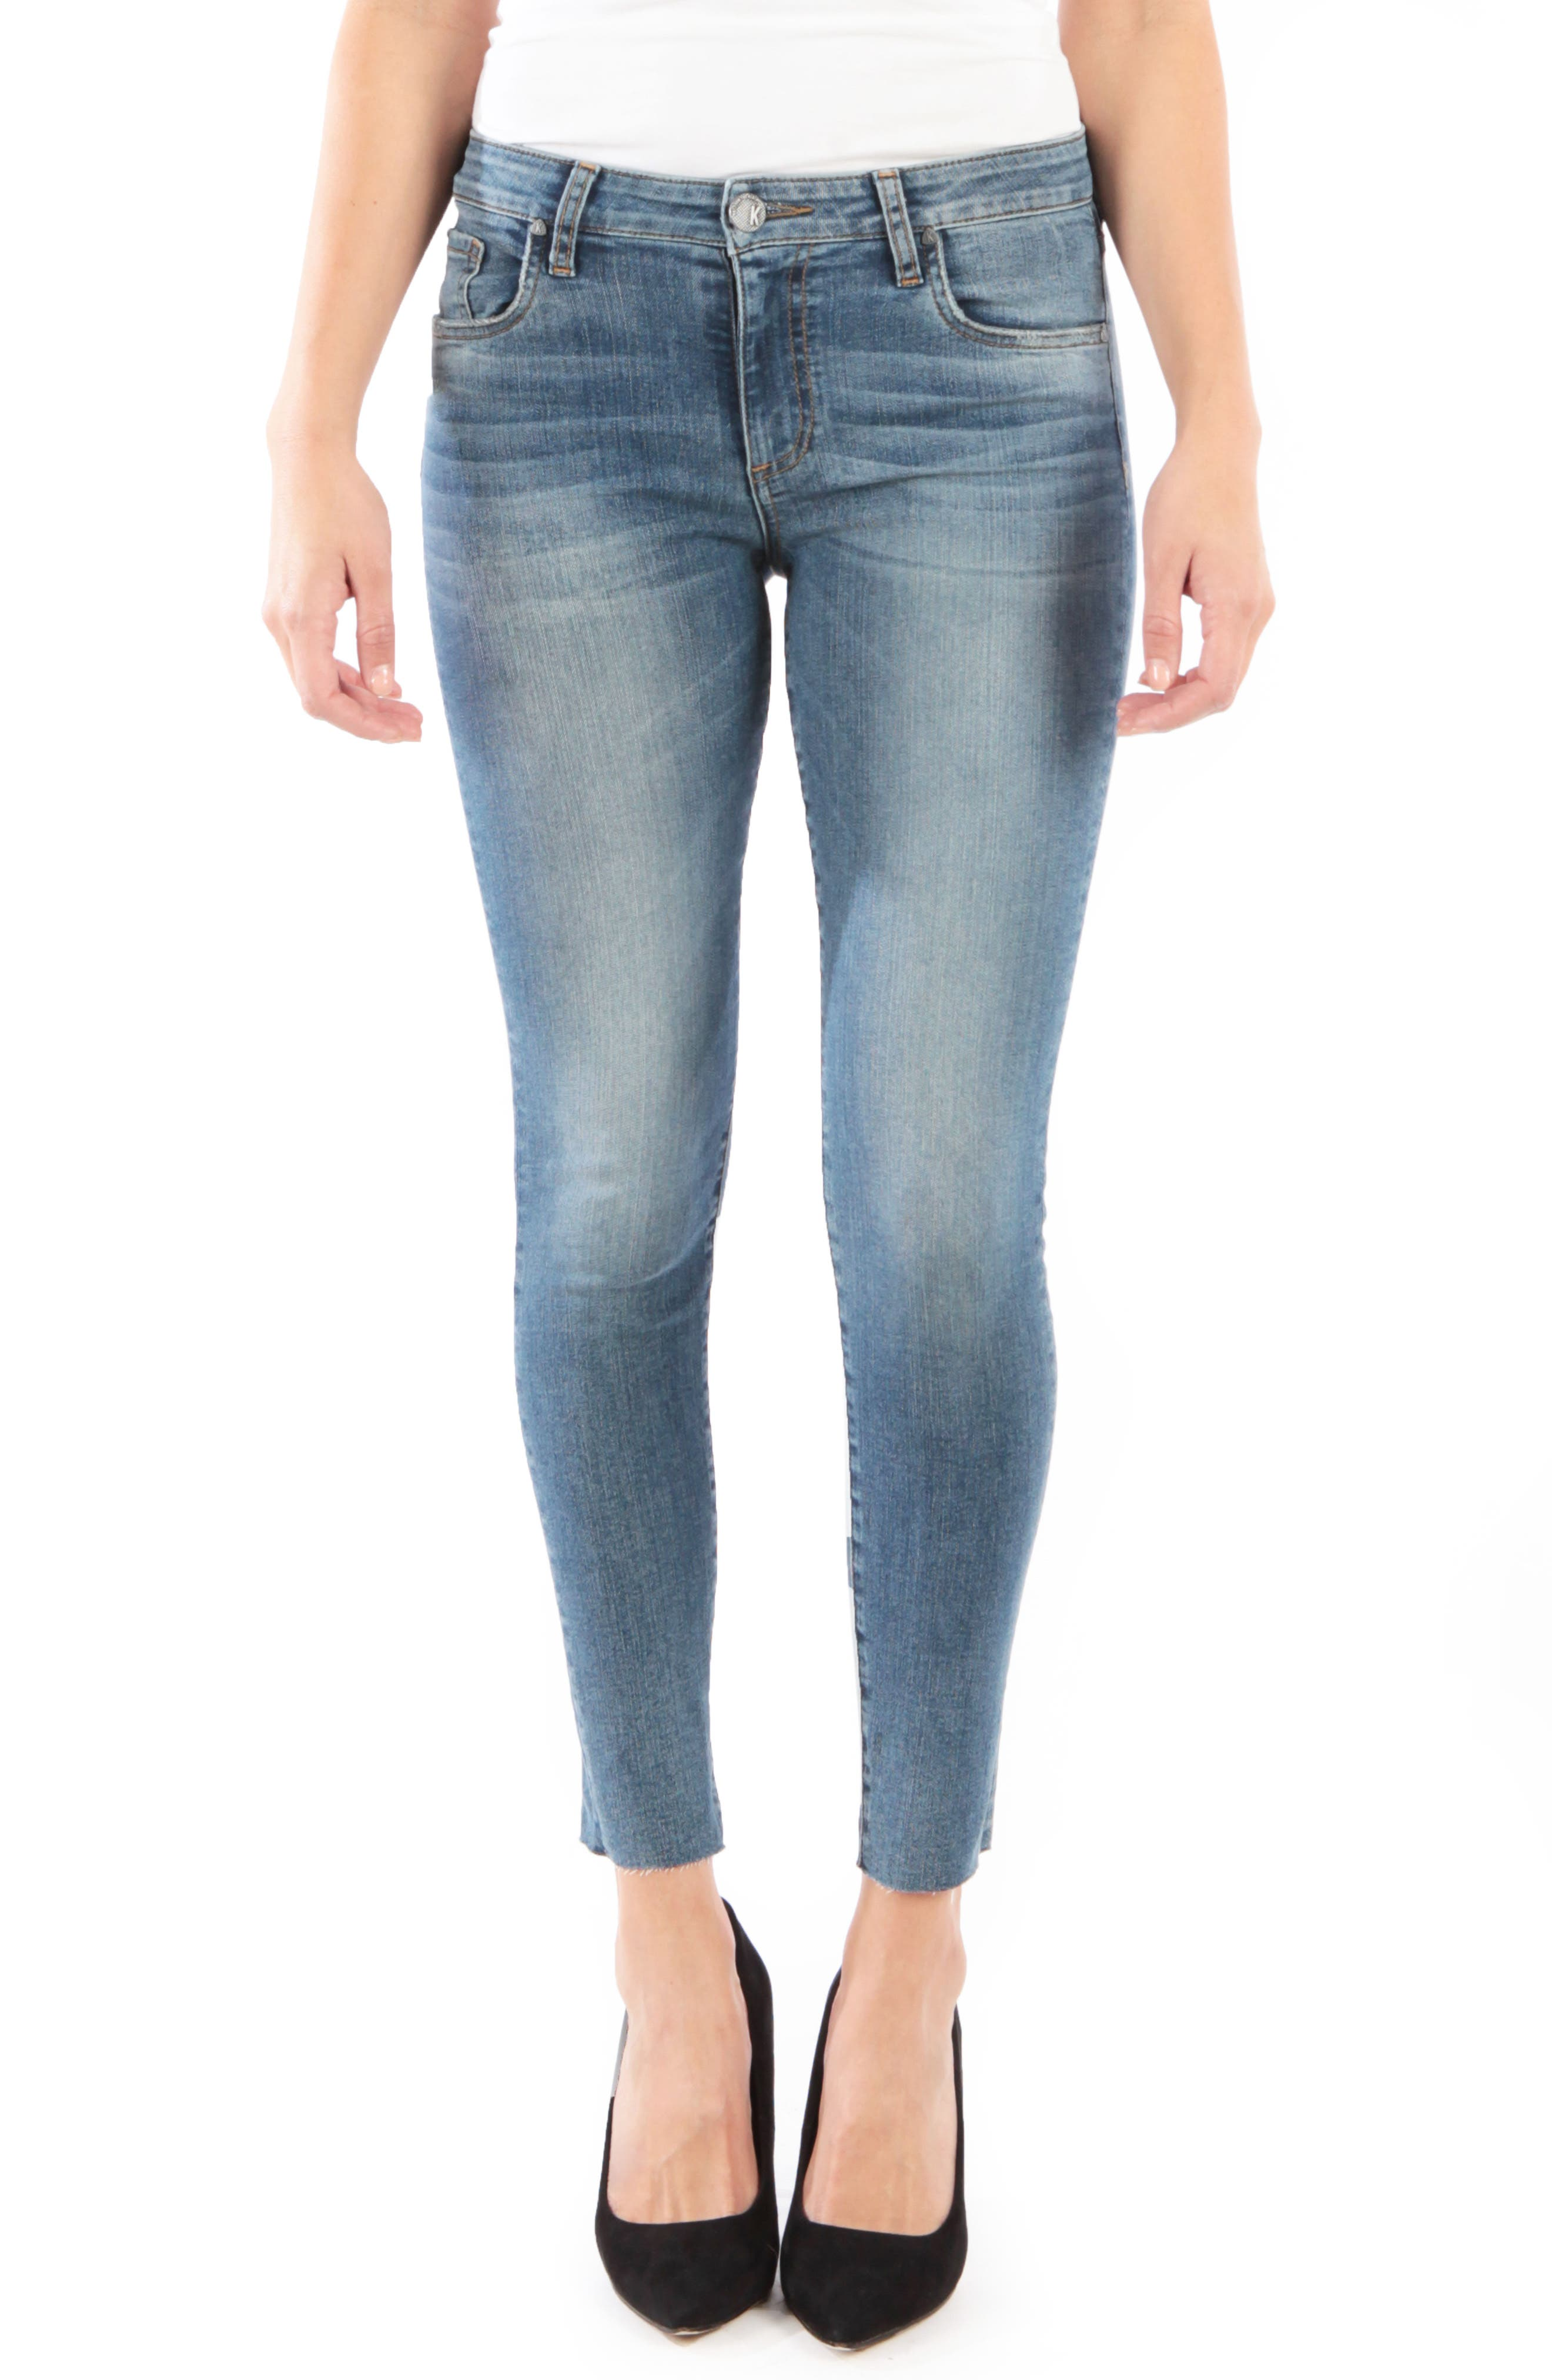 KUT FROM THE KLOTH, Donna High Waist Raw Hem Skinny Jeans, Main thumbnail 1, color, PHILOSOPHICAL